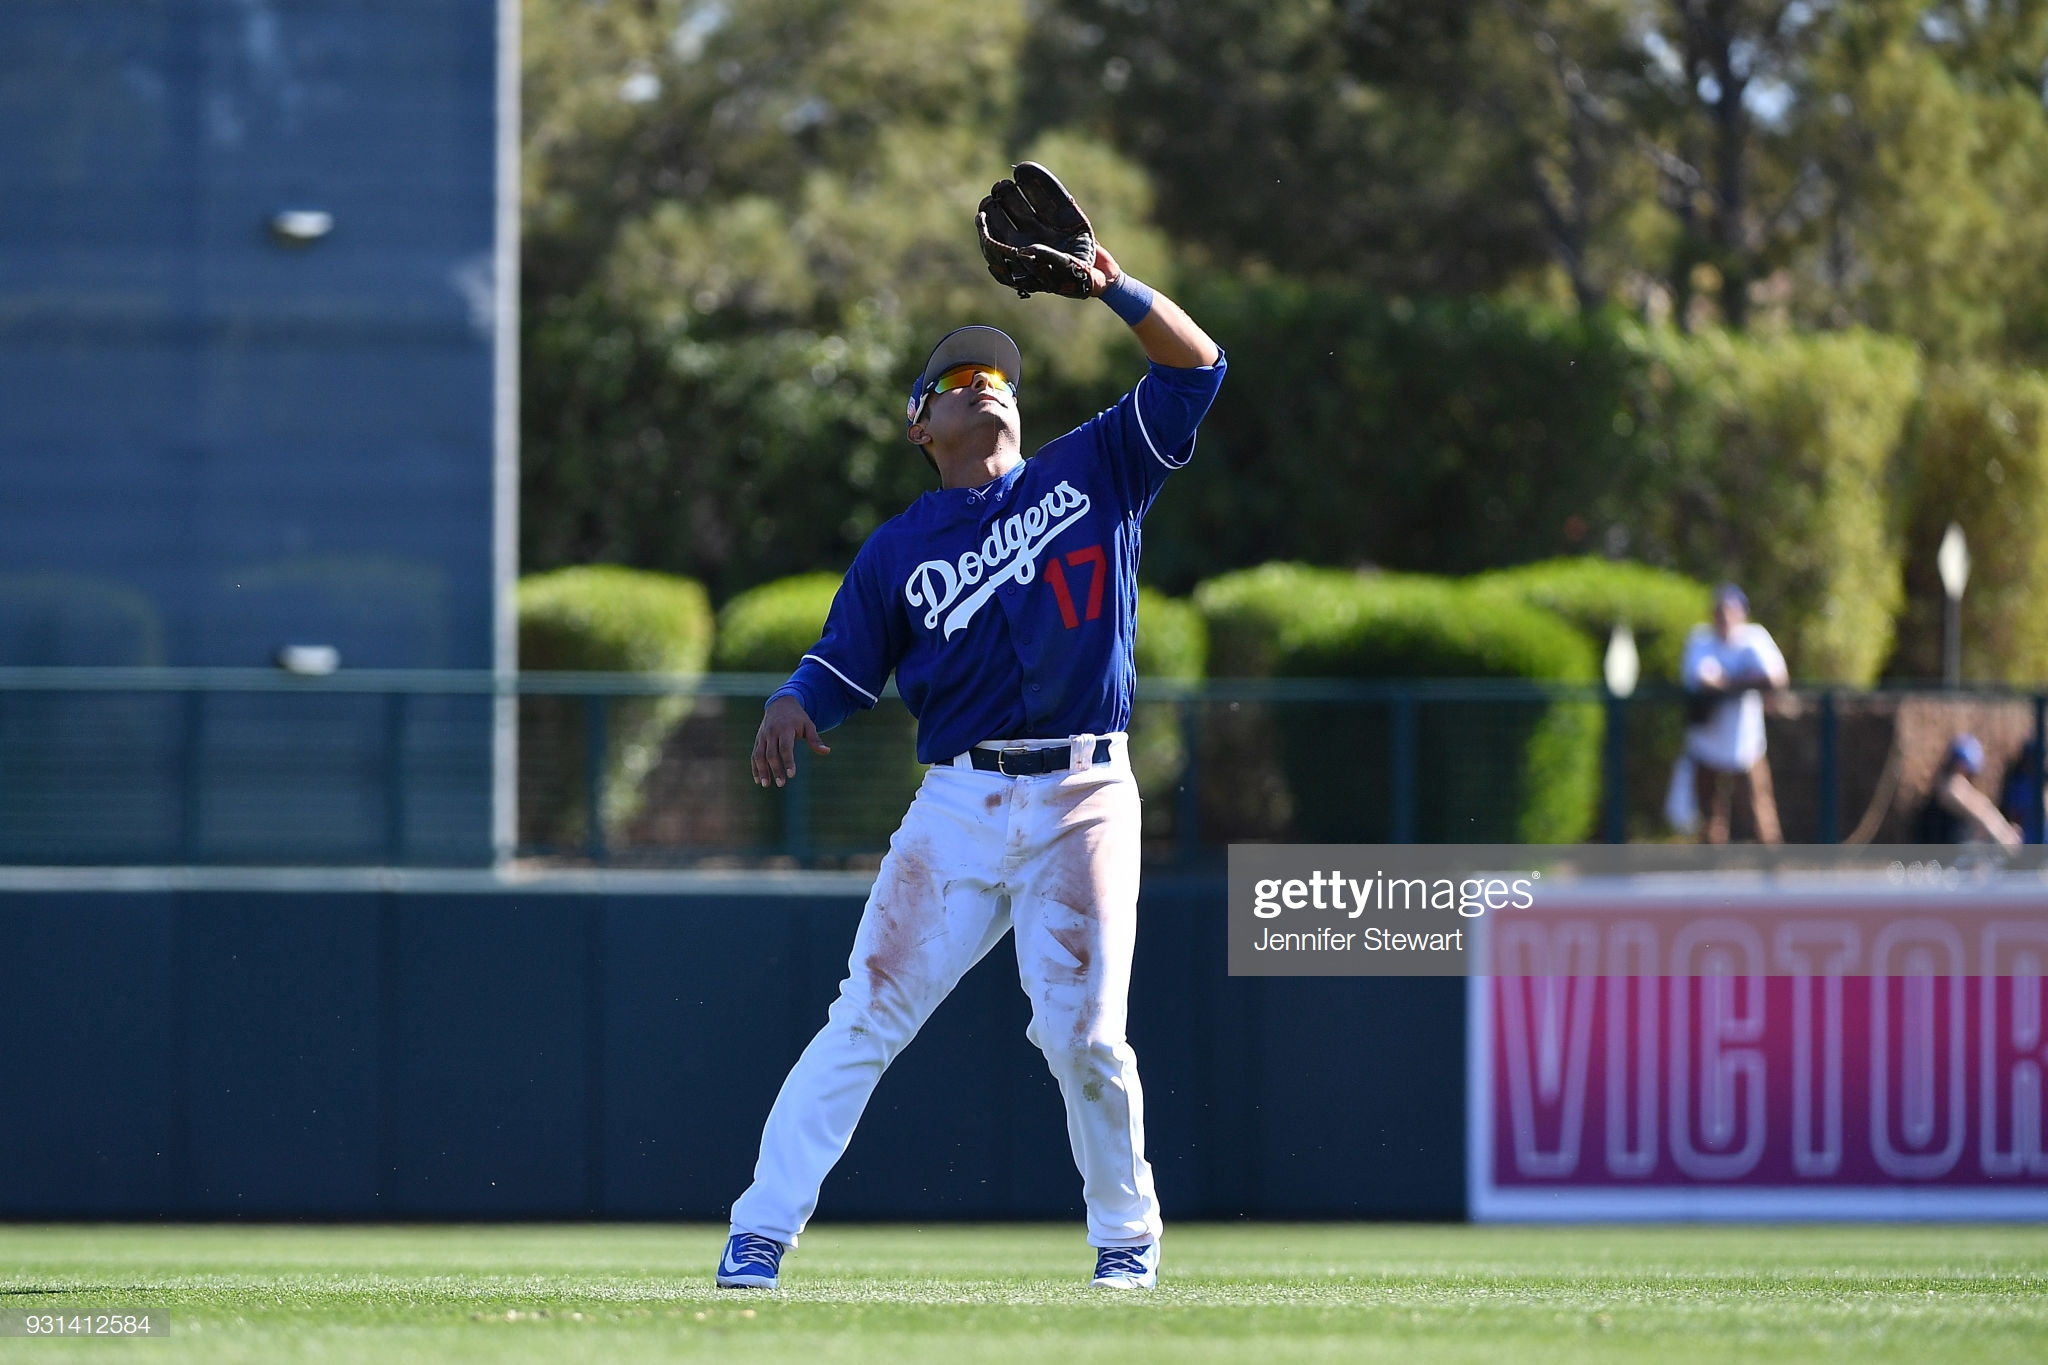 GLENDALE, AZ - MARCH 03: Donovan Solano #17 of the Los Angeles Dodgers catches a fly ball in a spring-training game against the Arizona Diamondbacks at Camelback Ranch on March 3, 2018 in Glendale, Arizona. (Photo by Jennifer Stewart/Getty Images)